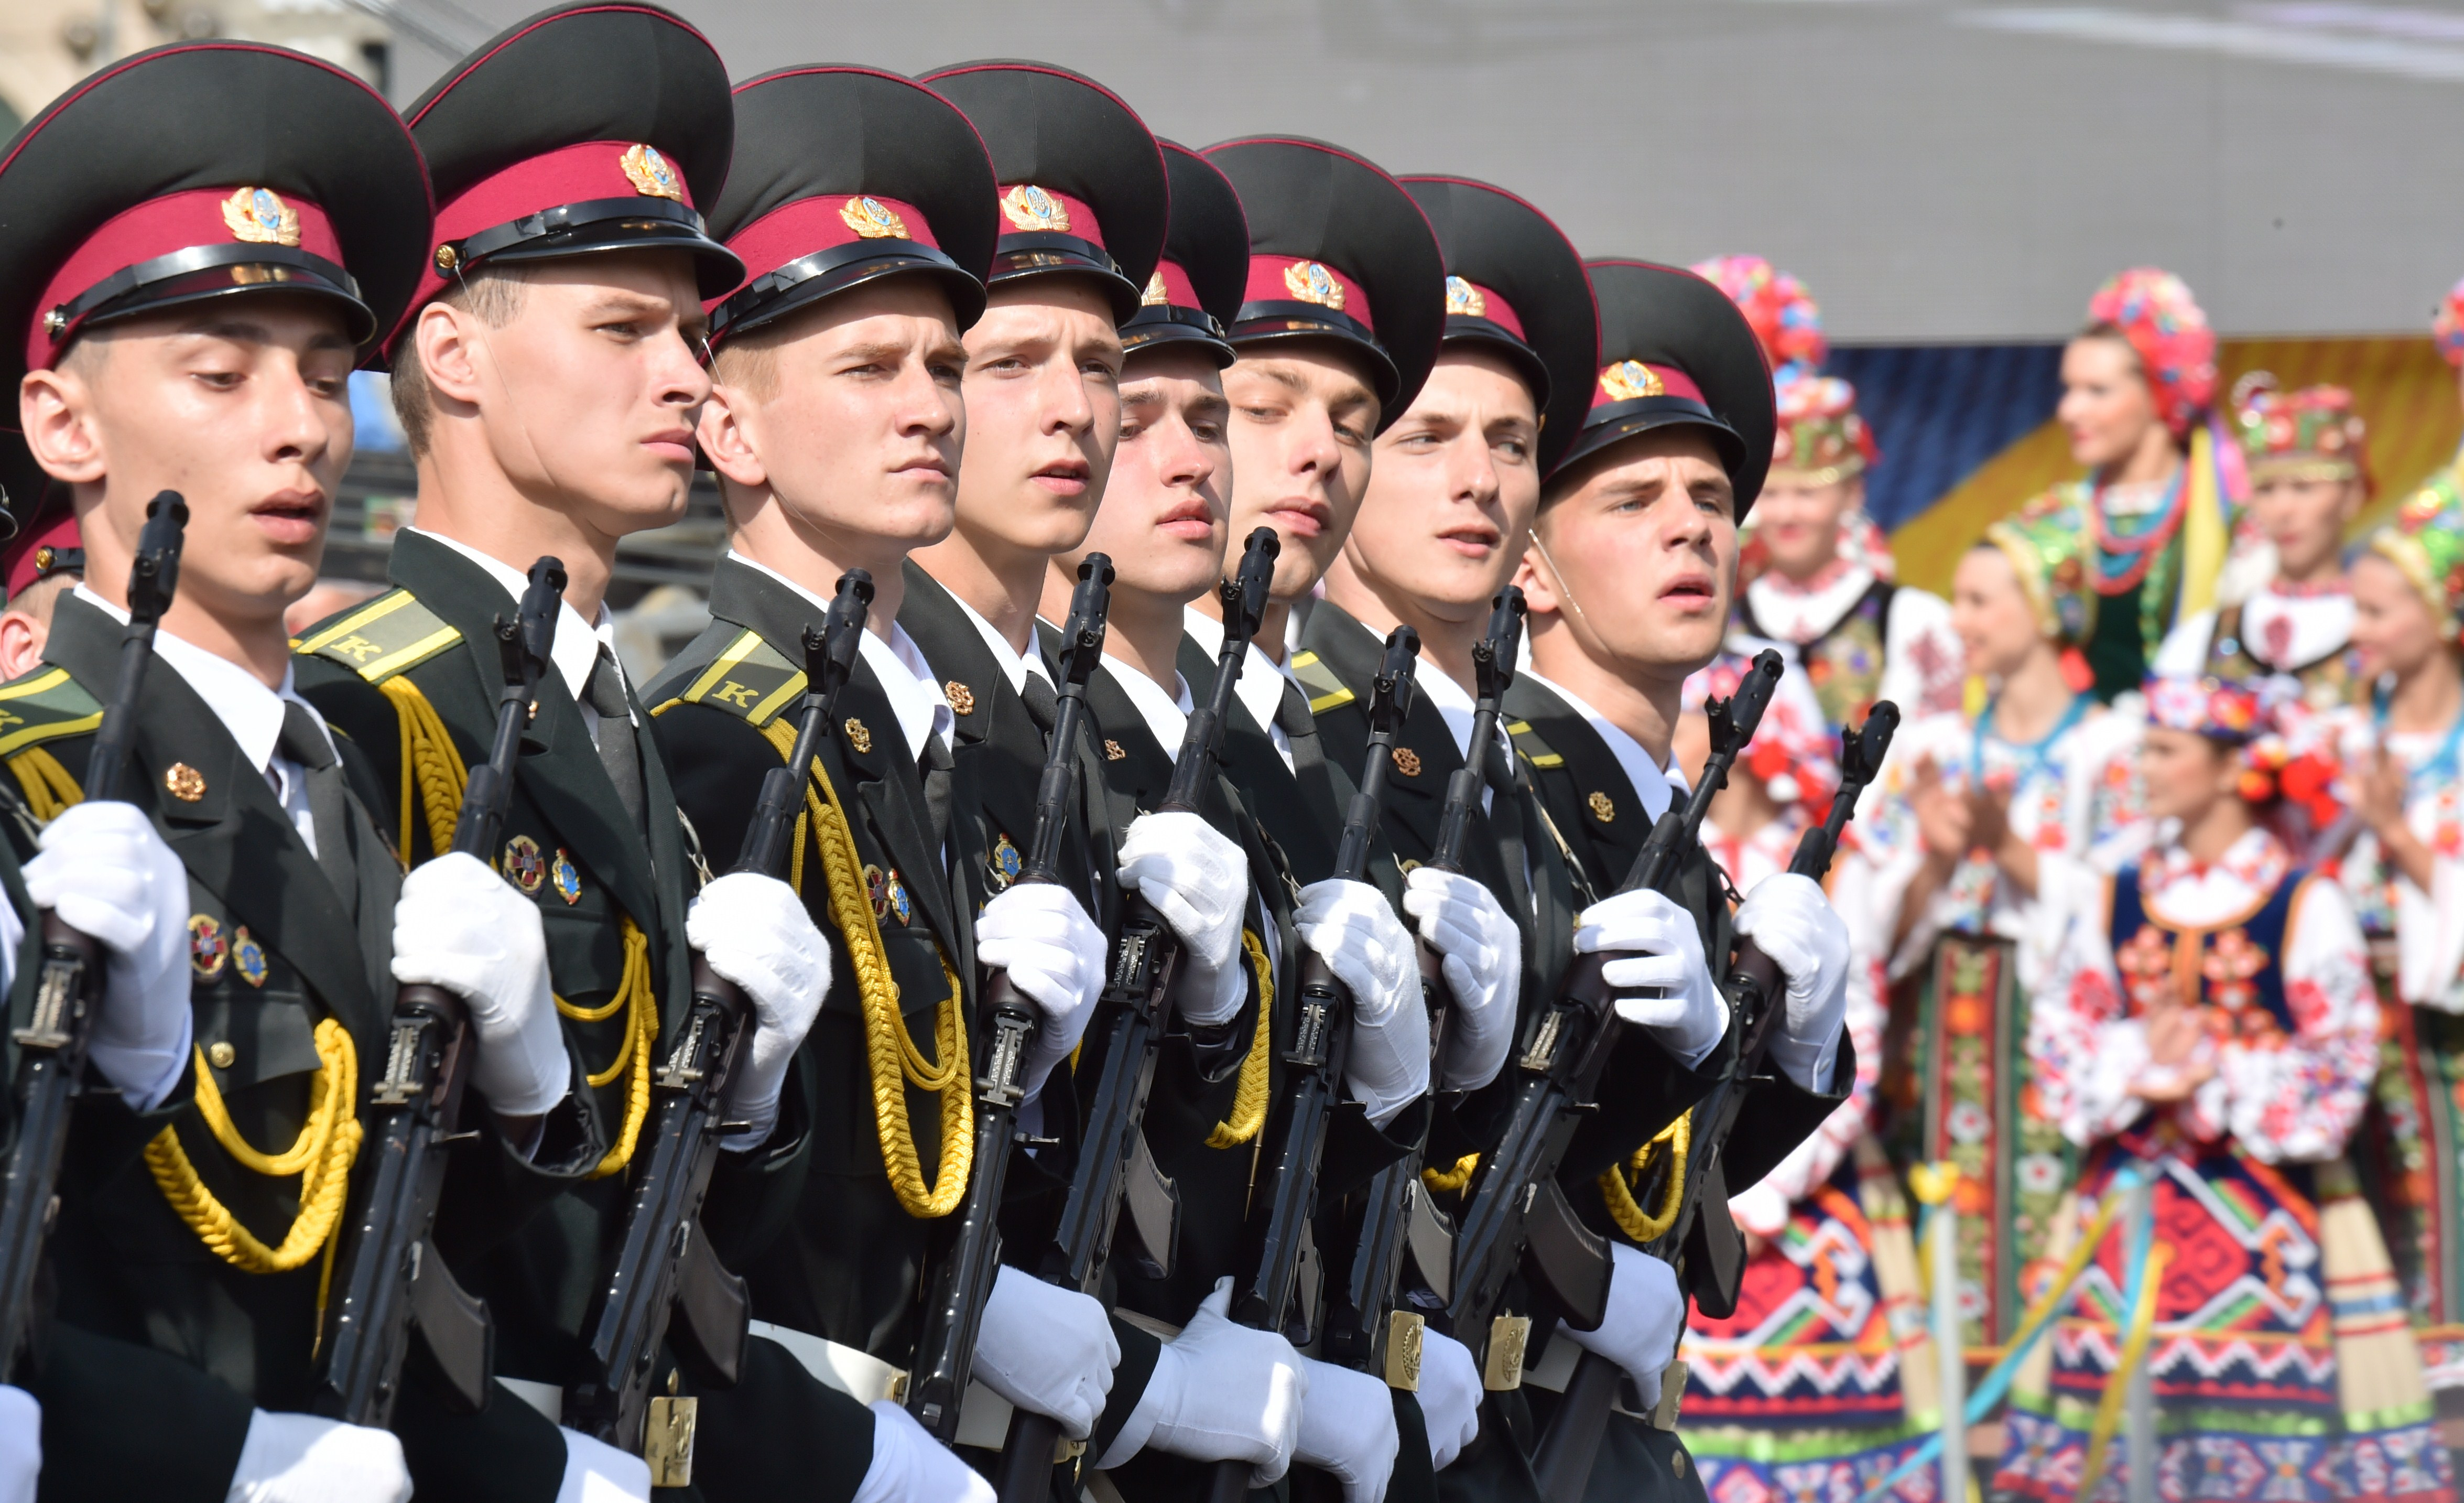 Ukrainian forces parade during a military ceremony marking the 23rd anniversary of Ukraine's independence in Kiev on Aug. 24, 2014.